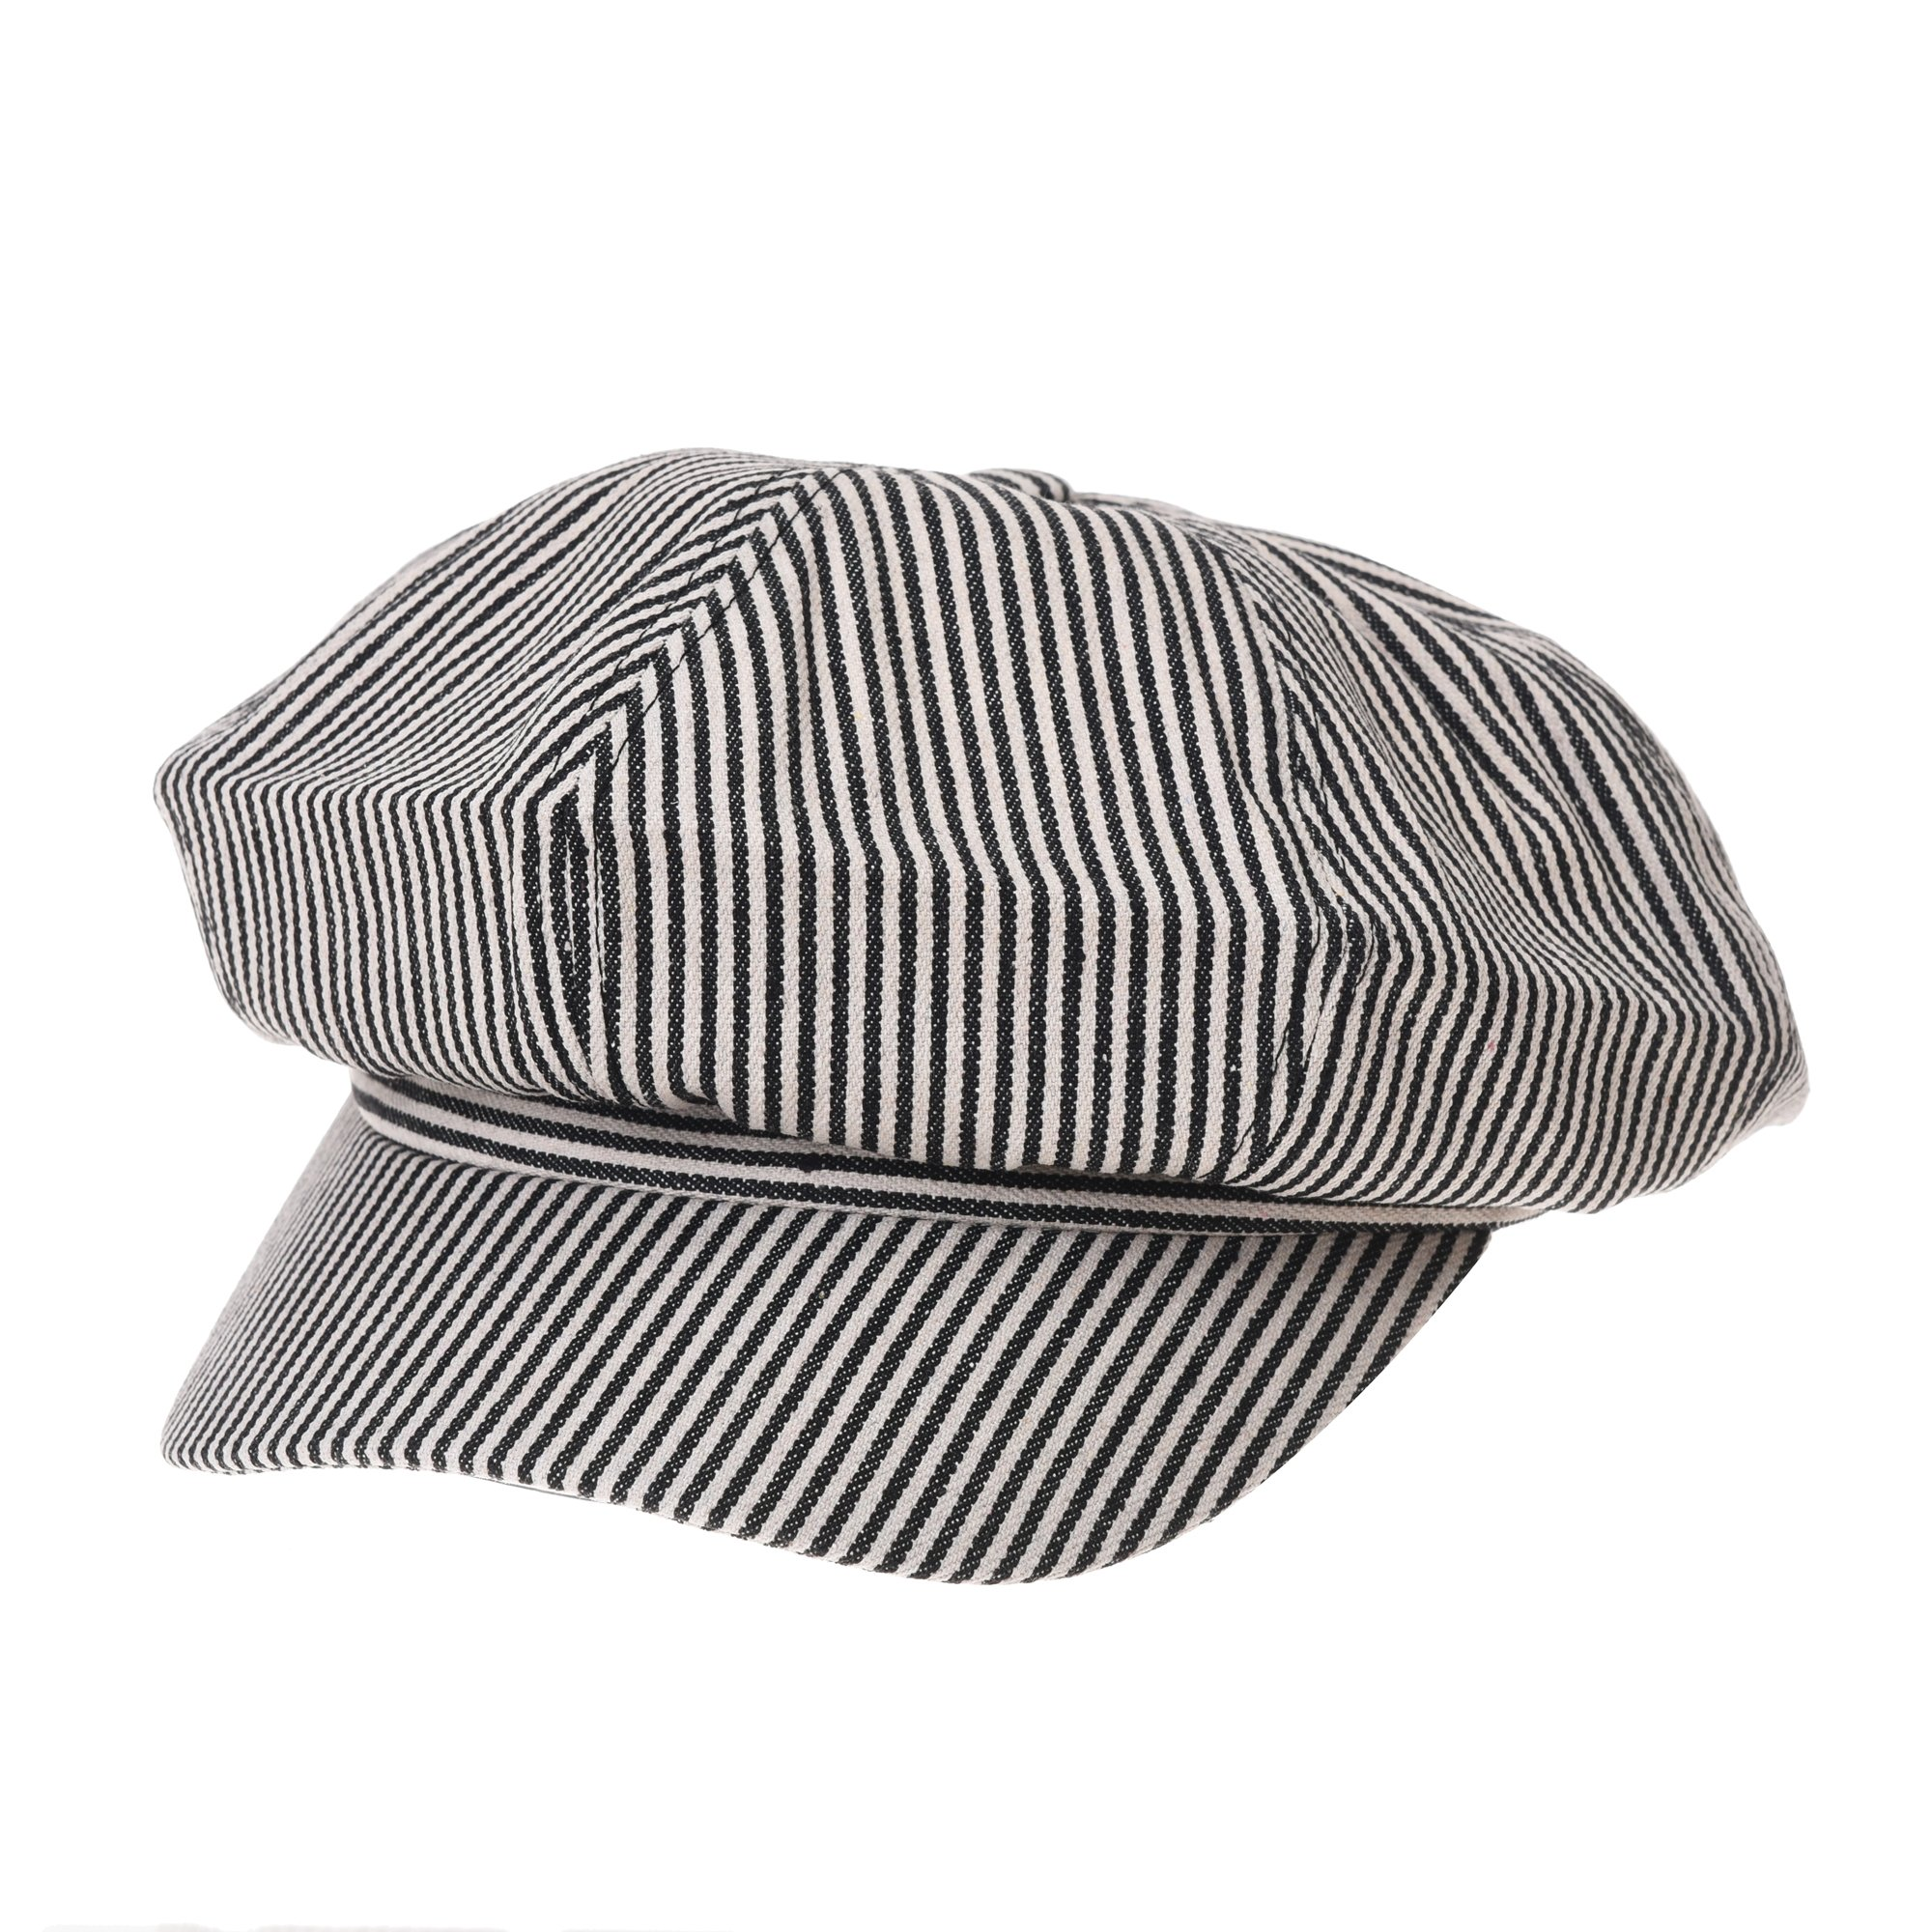 WITHMOONS Newsboy Hat Cotton Beret Cap Bakerboy Visor Peaked Stripe Pattern Hat SLG1010 (Black) by WITHMOONS